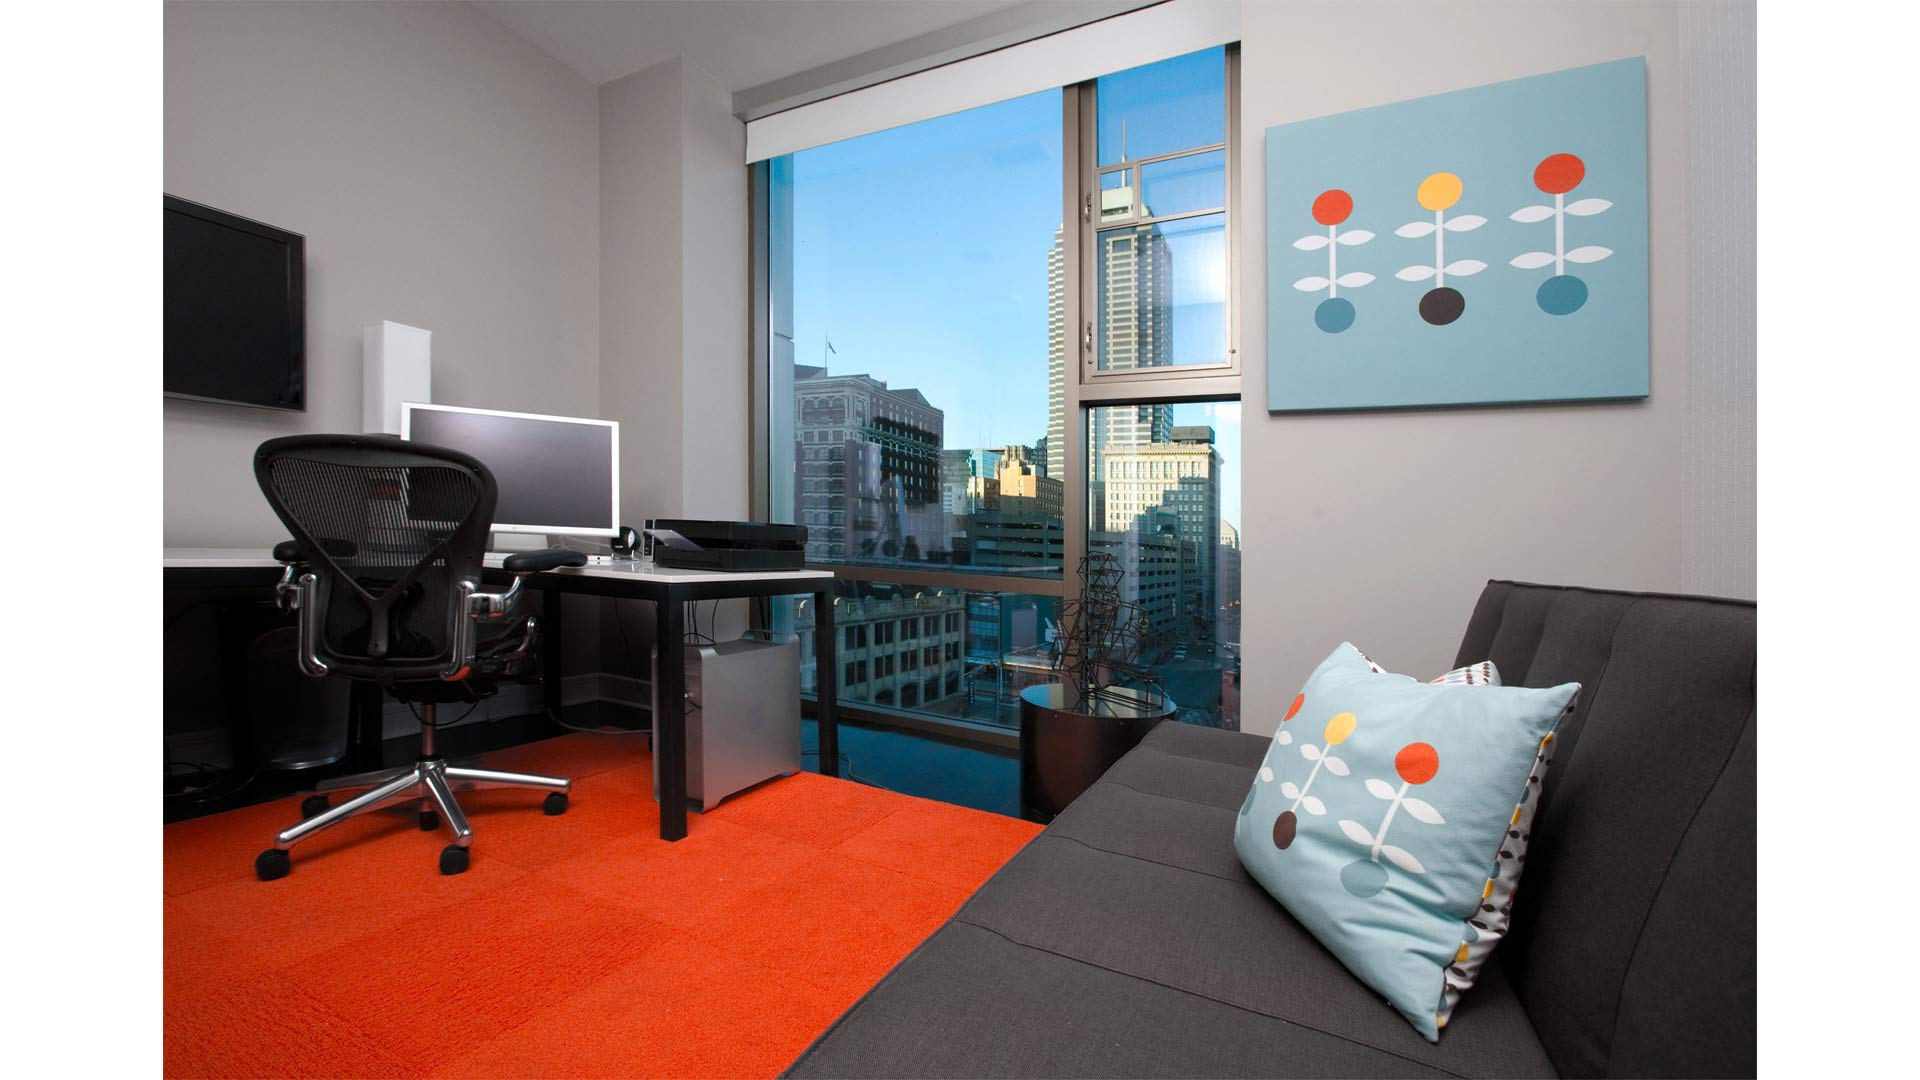 New Home Office Furnishings with downtown views - Industrial Modern Interior (Allen Plaza) - Downtown Indianapolis